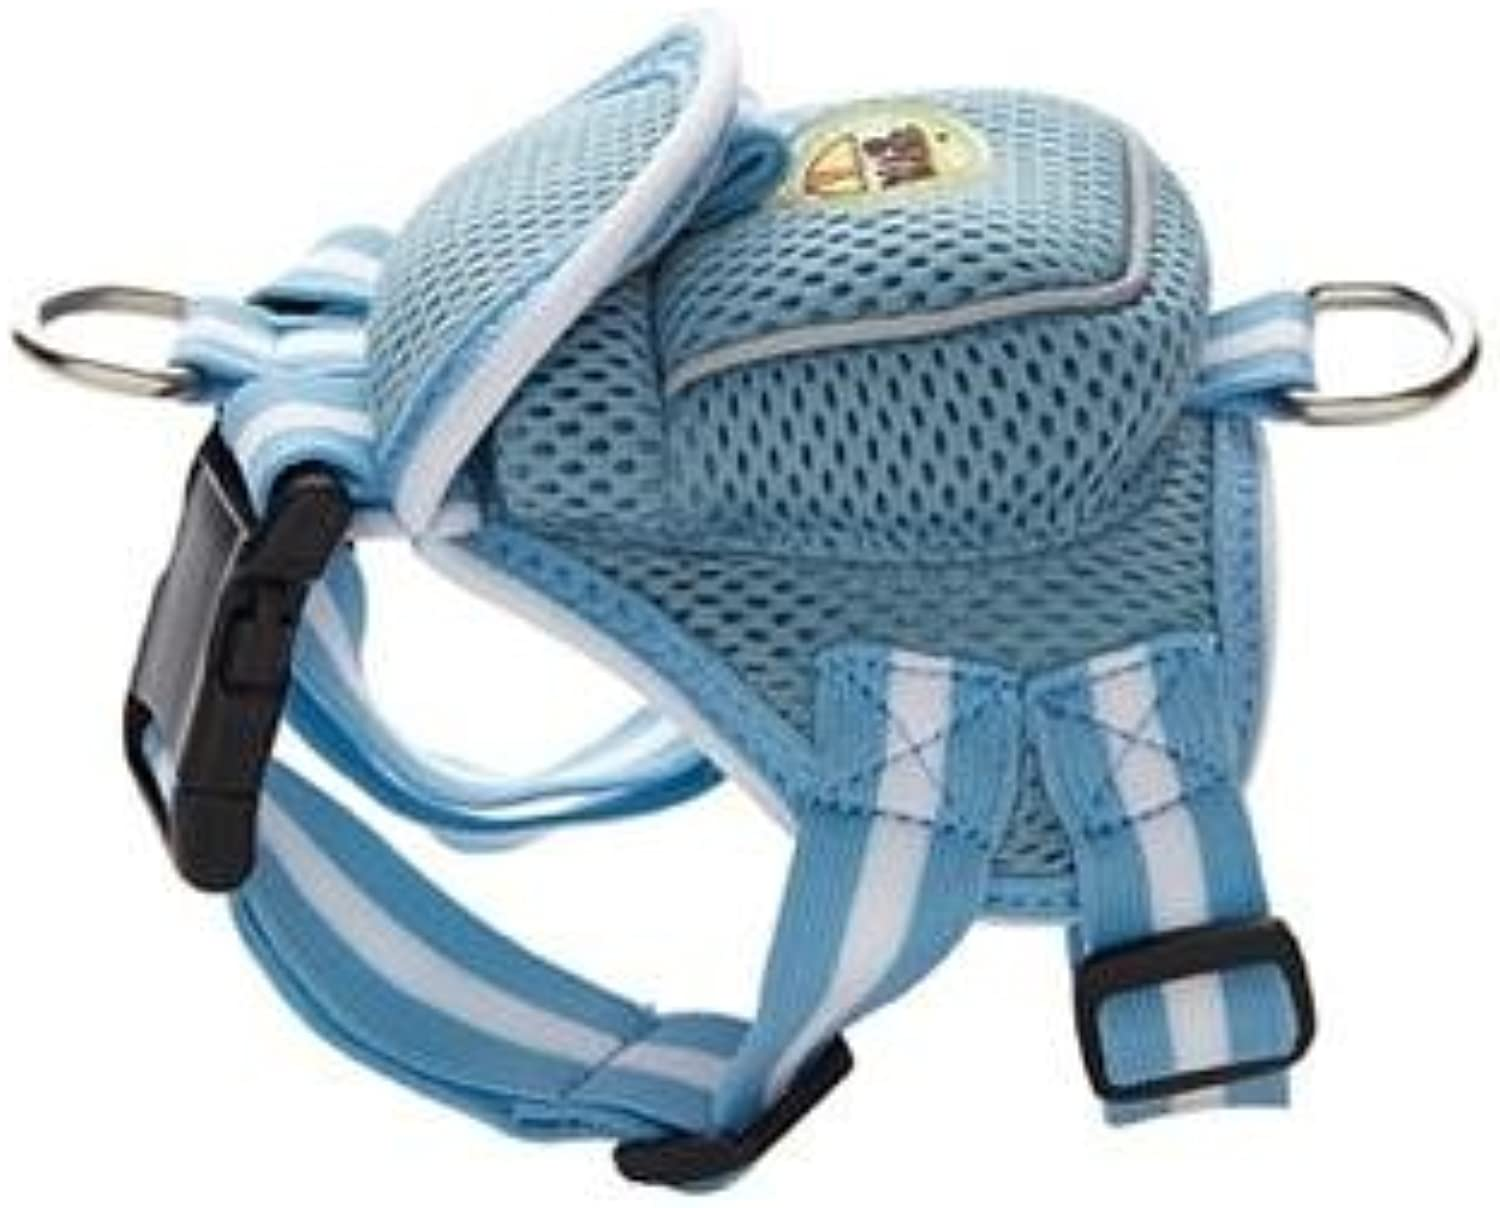 Fashion Mesh Harness with Built in Back Pouch by Pet Life